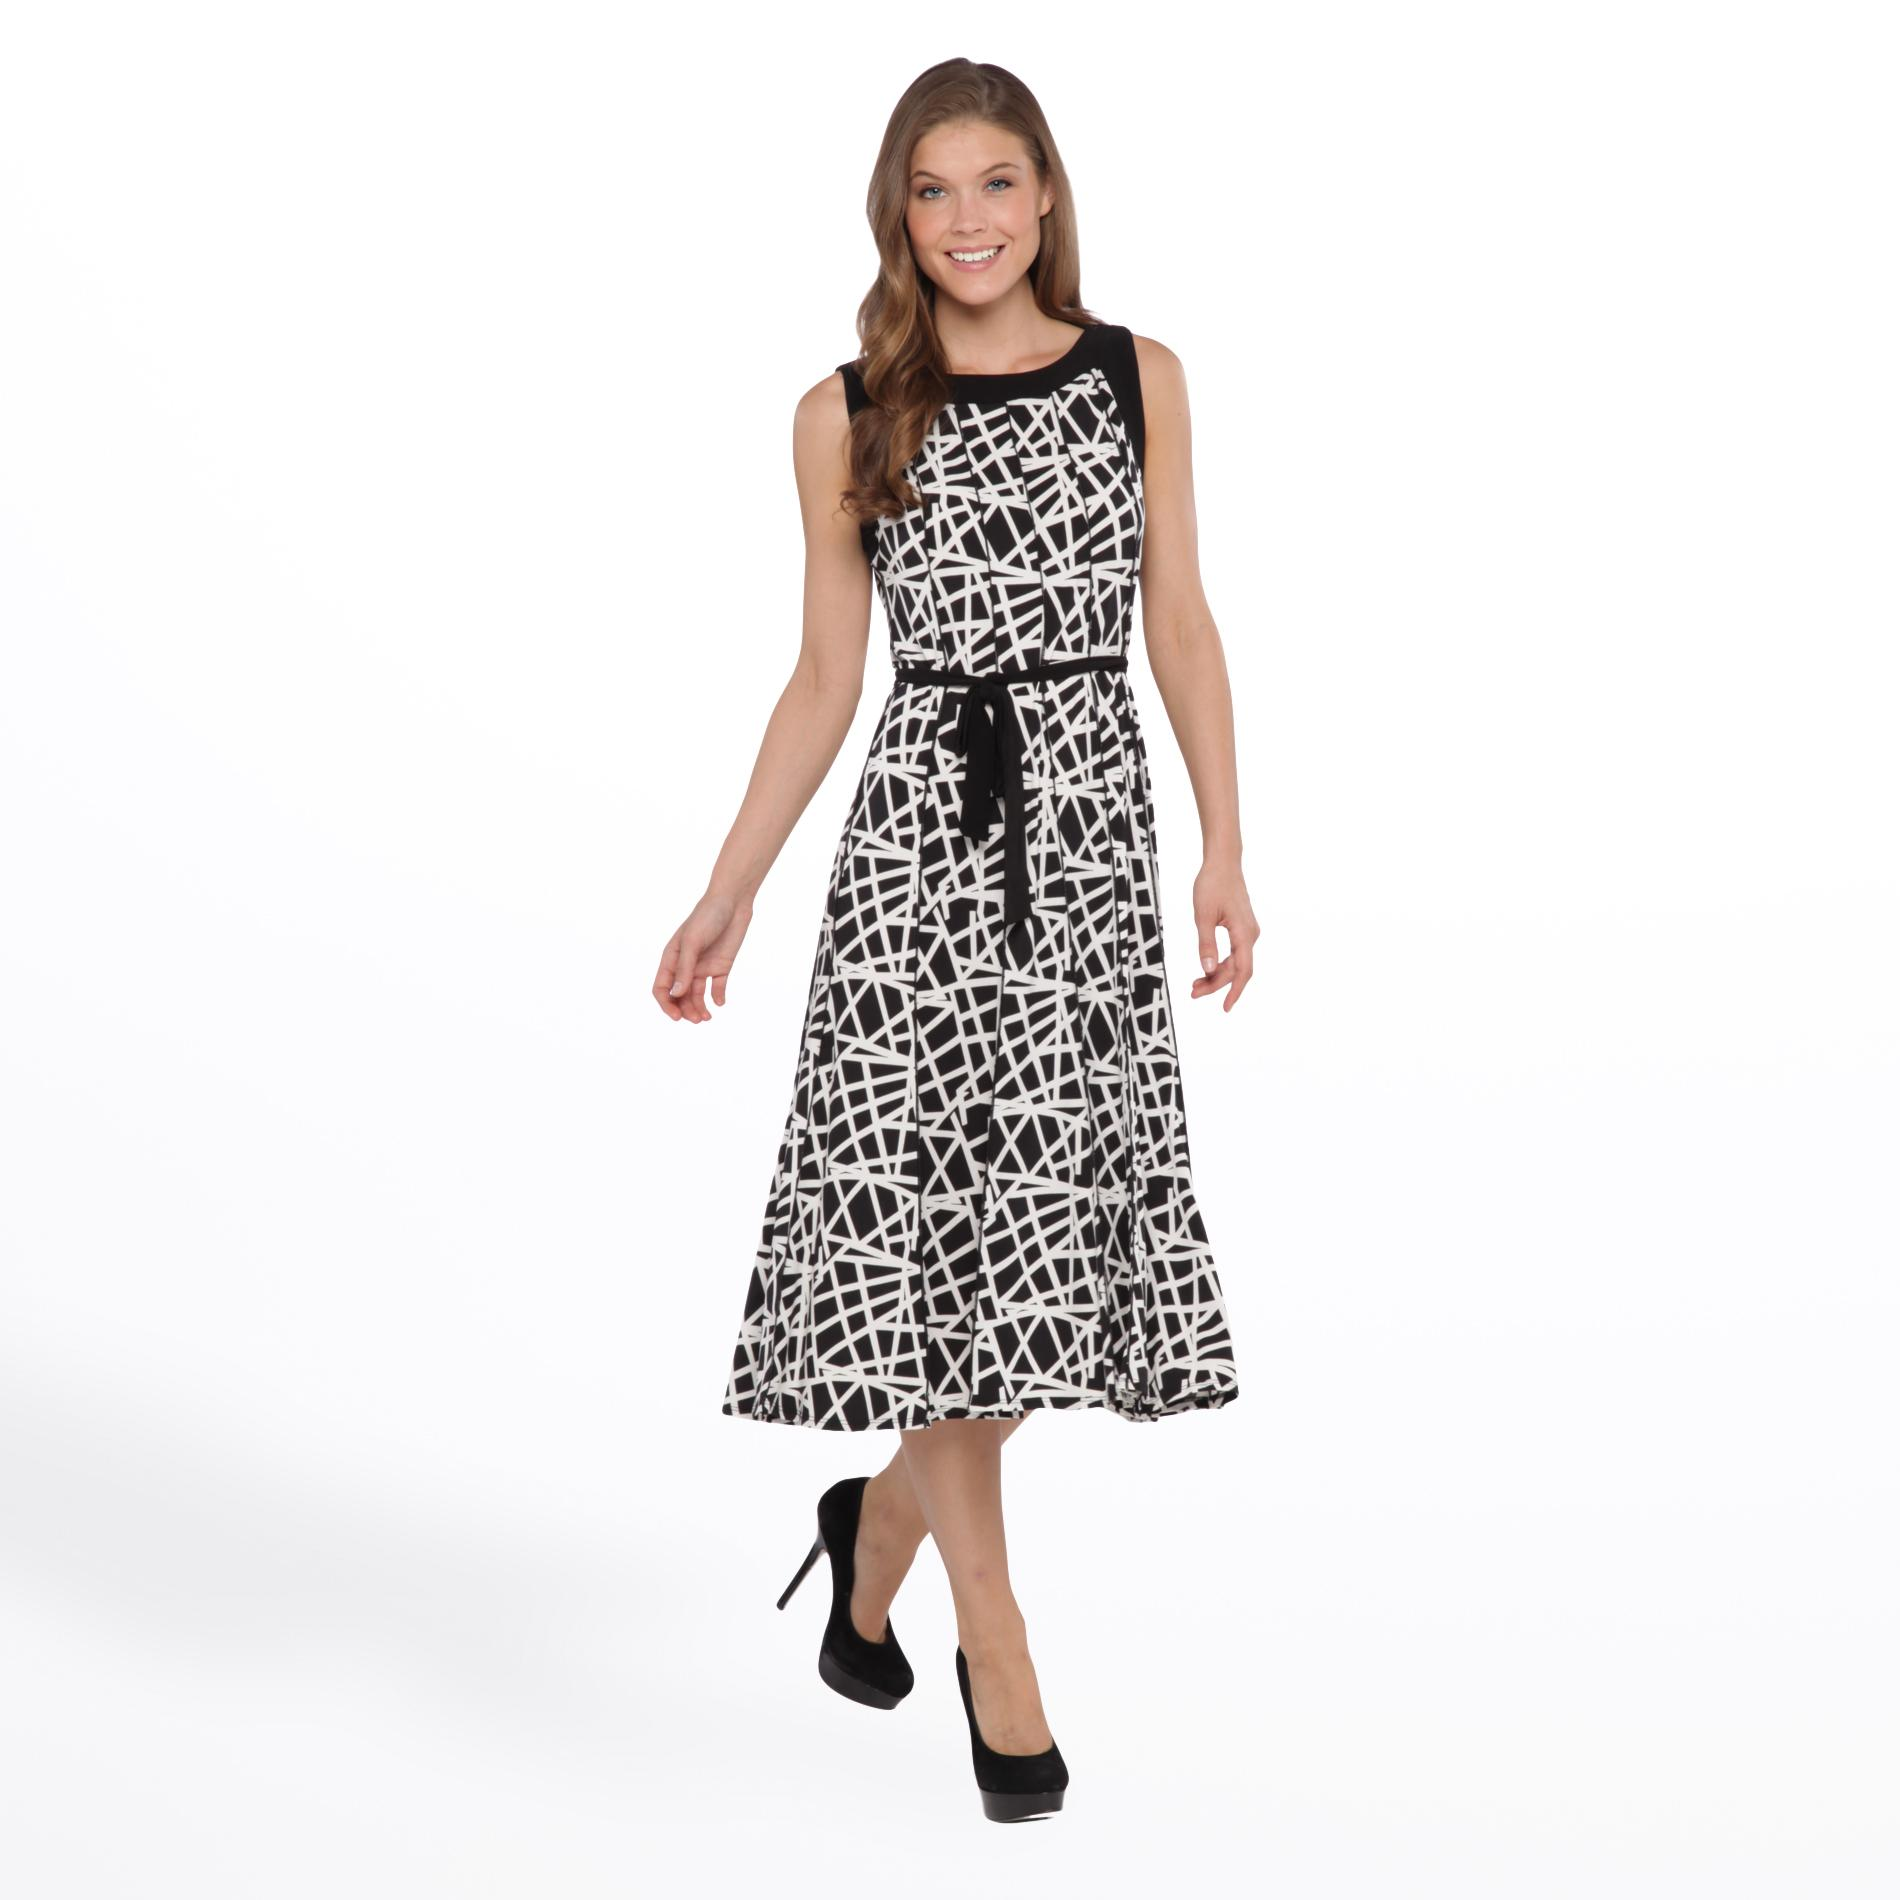 Perception Women's Party Dress - Geometric at Sears.com